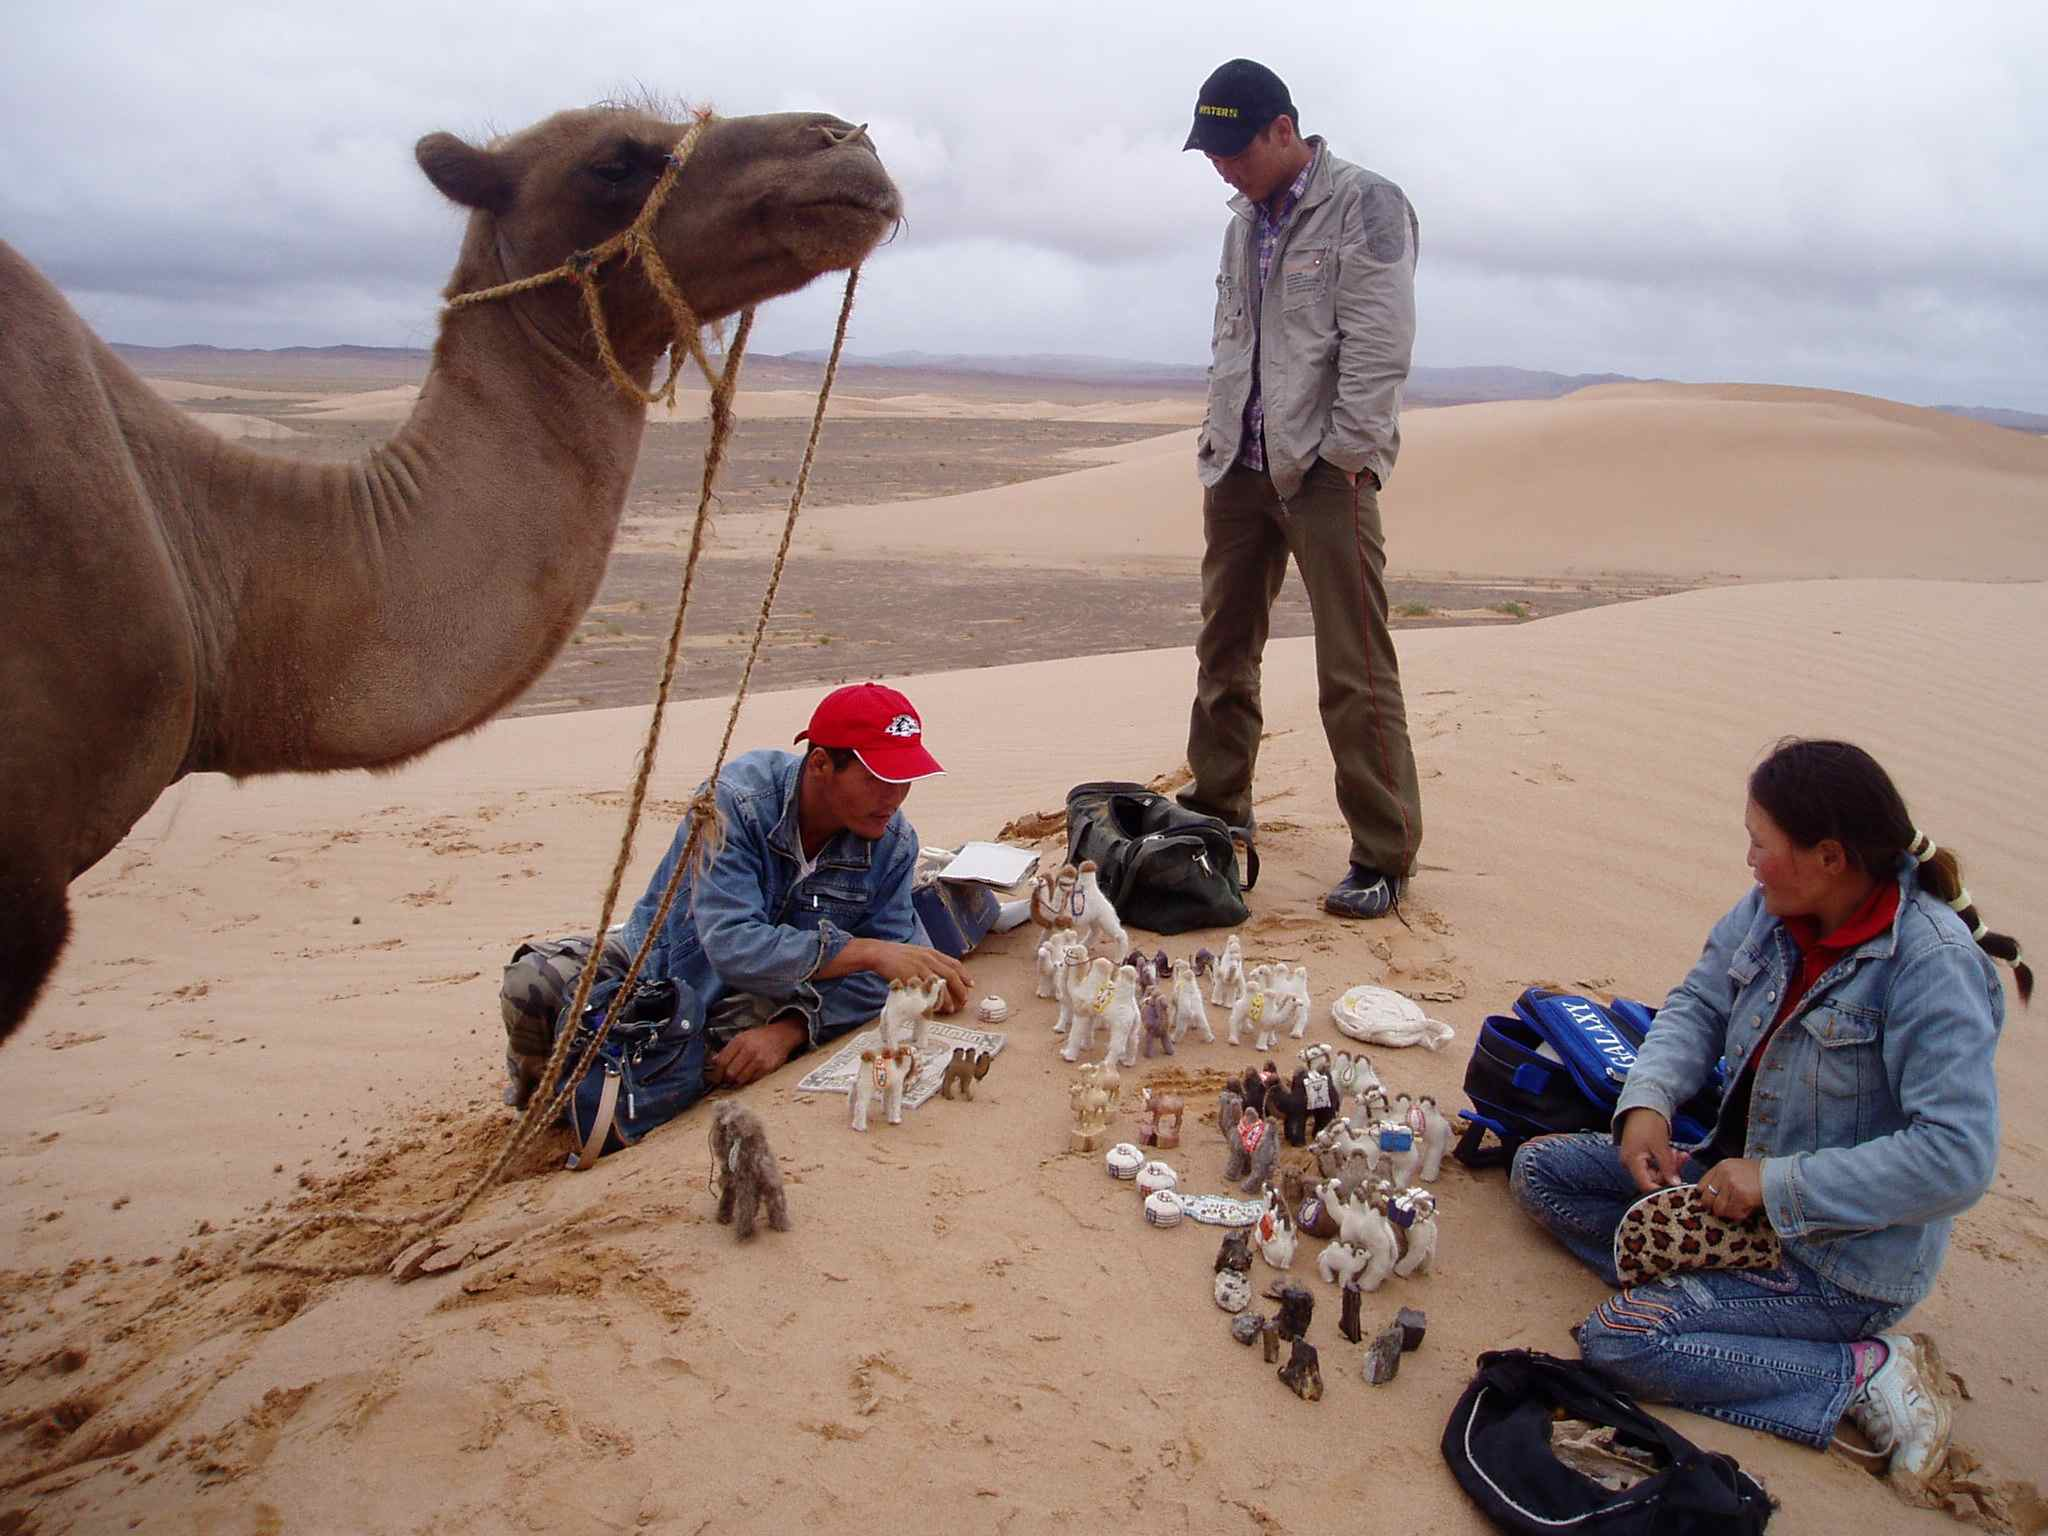 A souvenir salesman who appeared out of nowhere in the middle of the Gobi Desert.